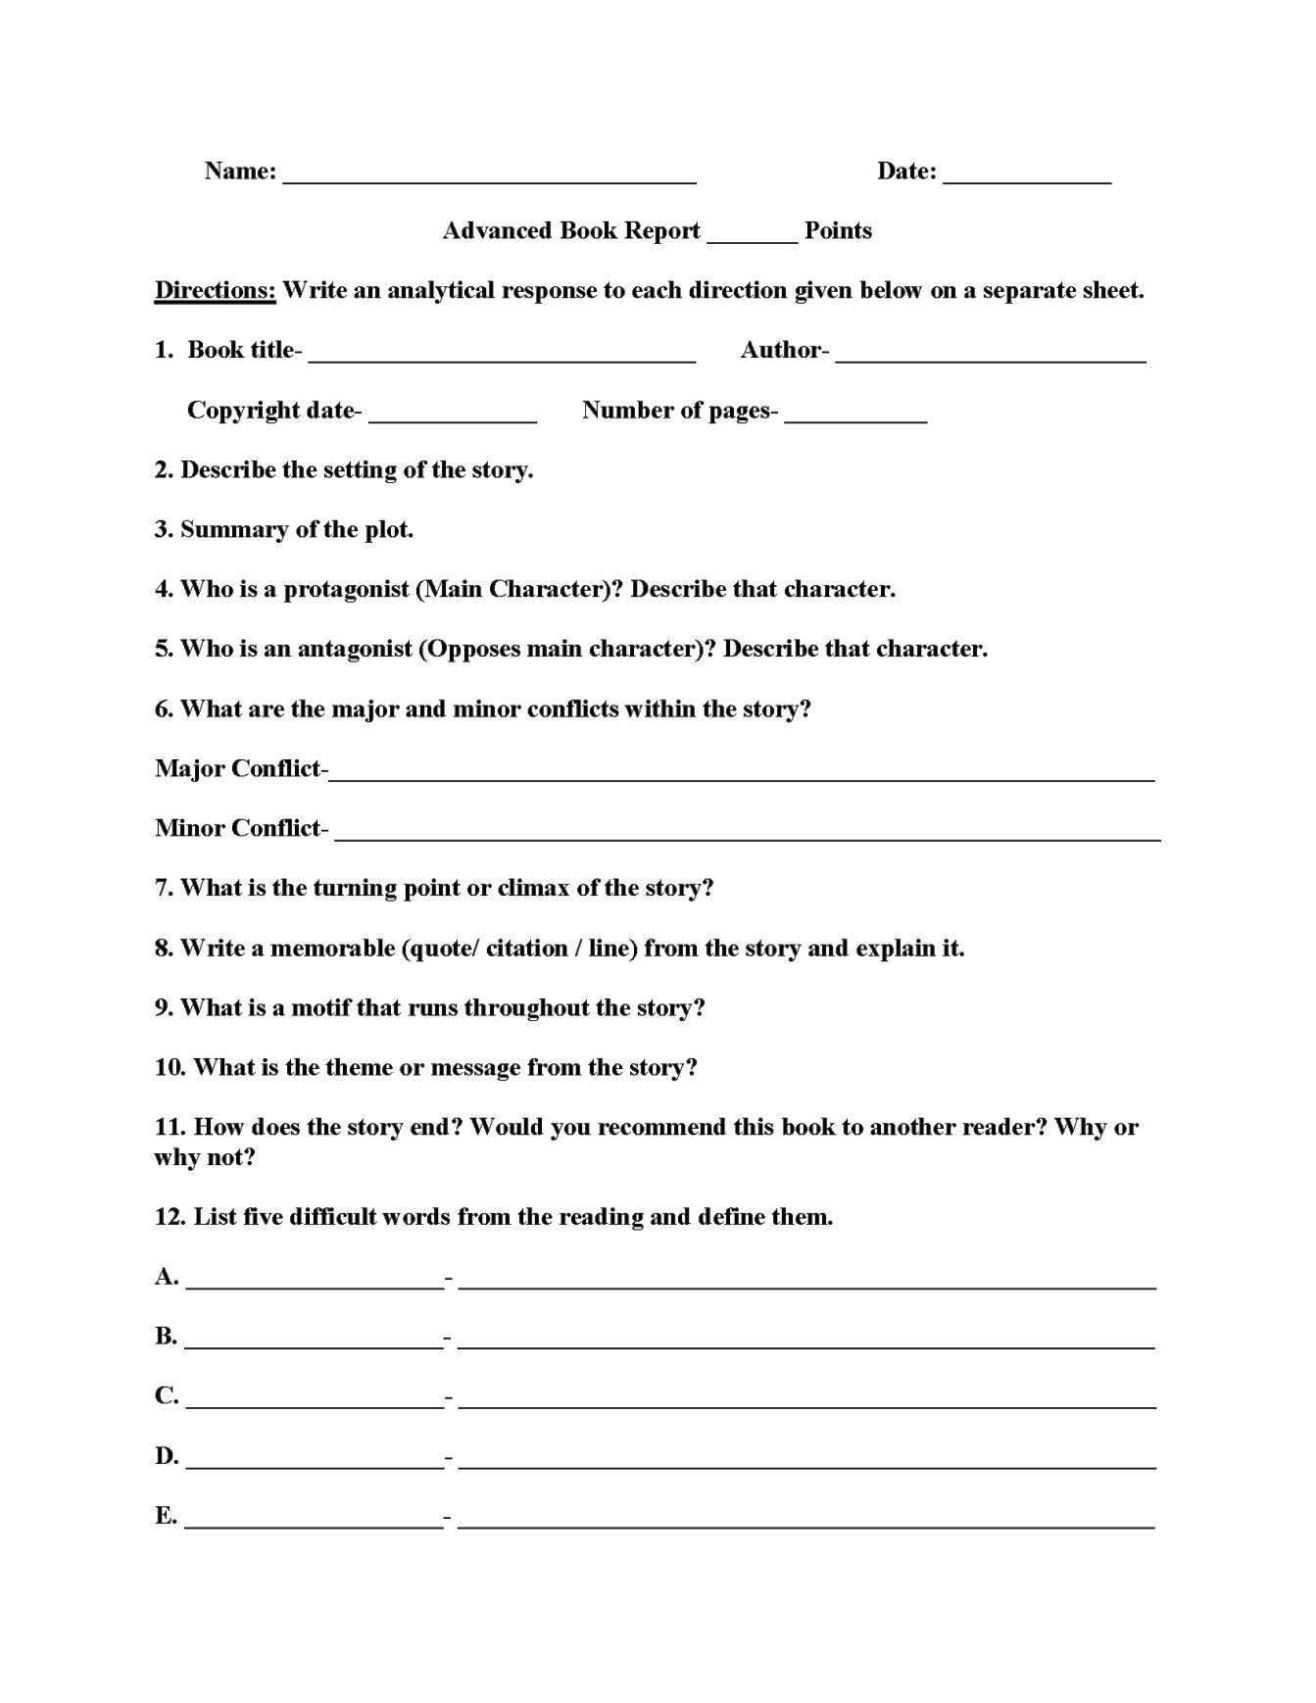 Worksheet 4Th Grade Report | Printable Worksheets And Within 4Th Grade Book Report Template